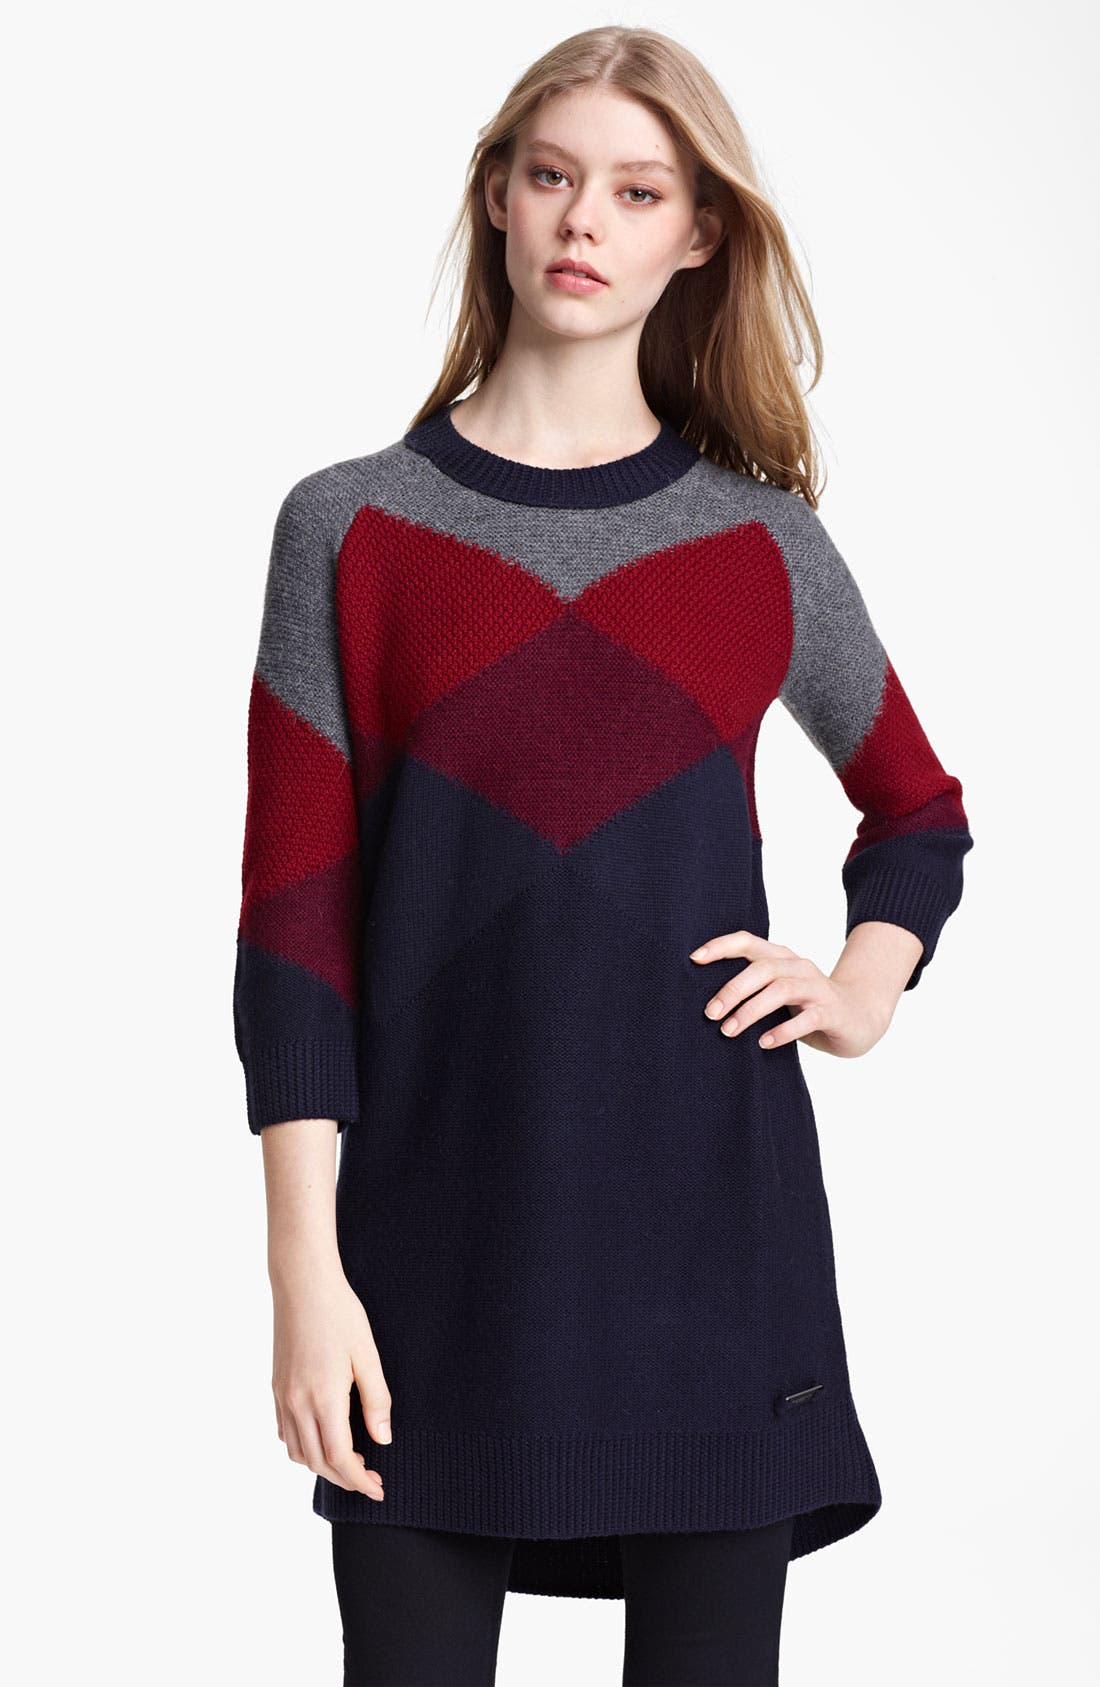 Alternate Image 1 Selected - Burberry Brit Knit Sweater Dress (Online Exclusive)